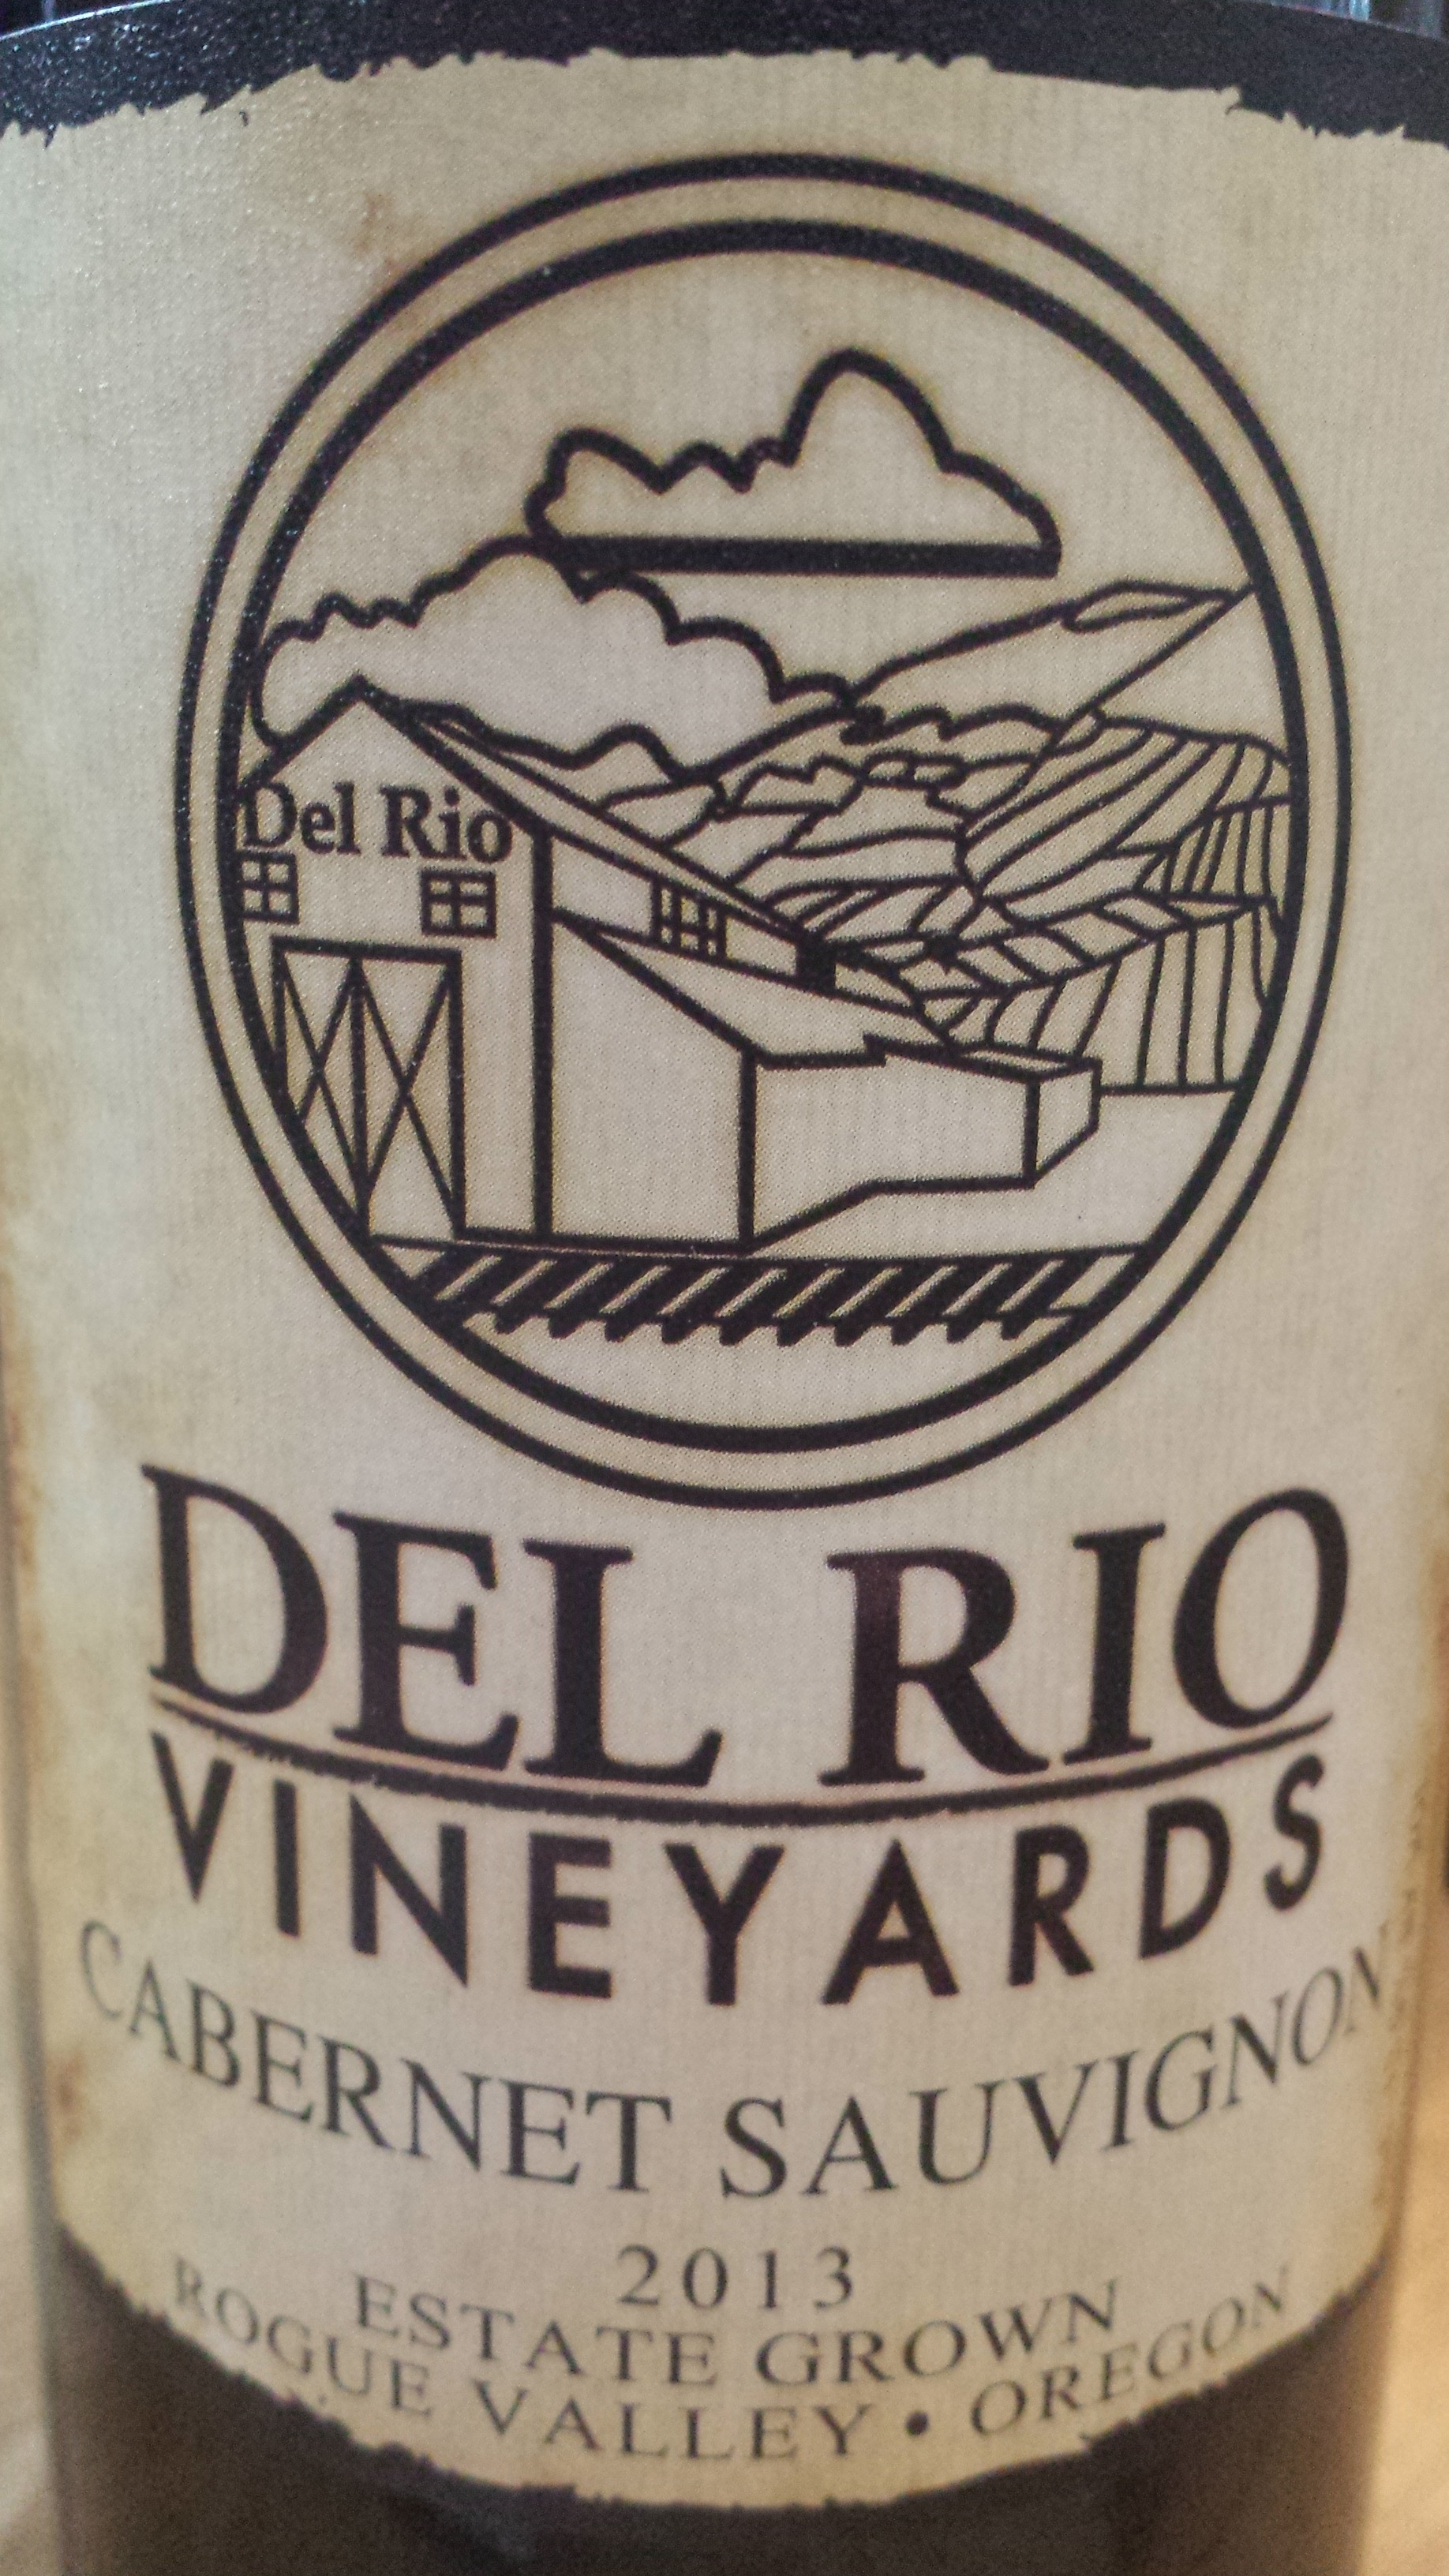 Del Rio Vineyards – Cabernet Sauvignon 2013 – Estate Grown – Rogue Valley